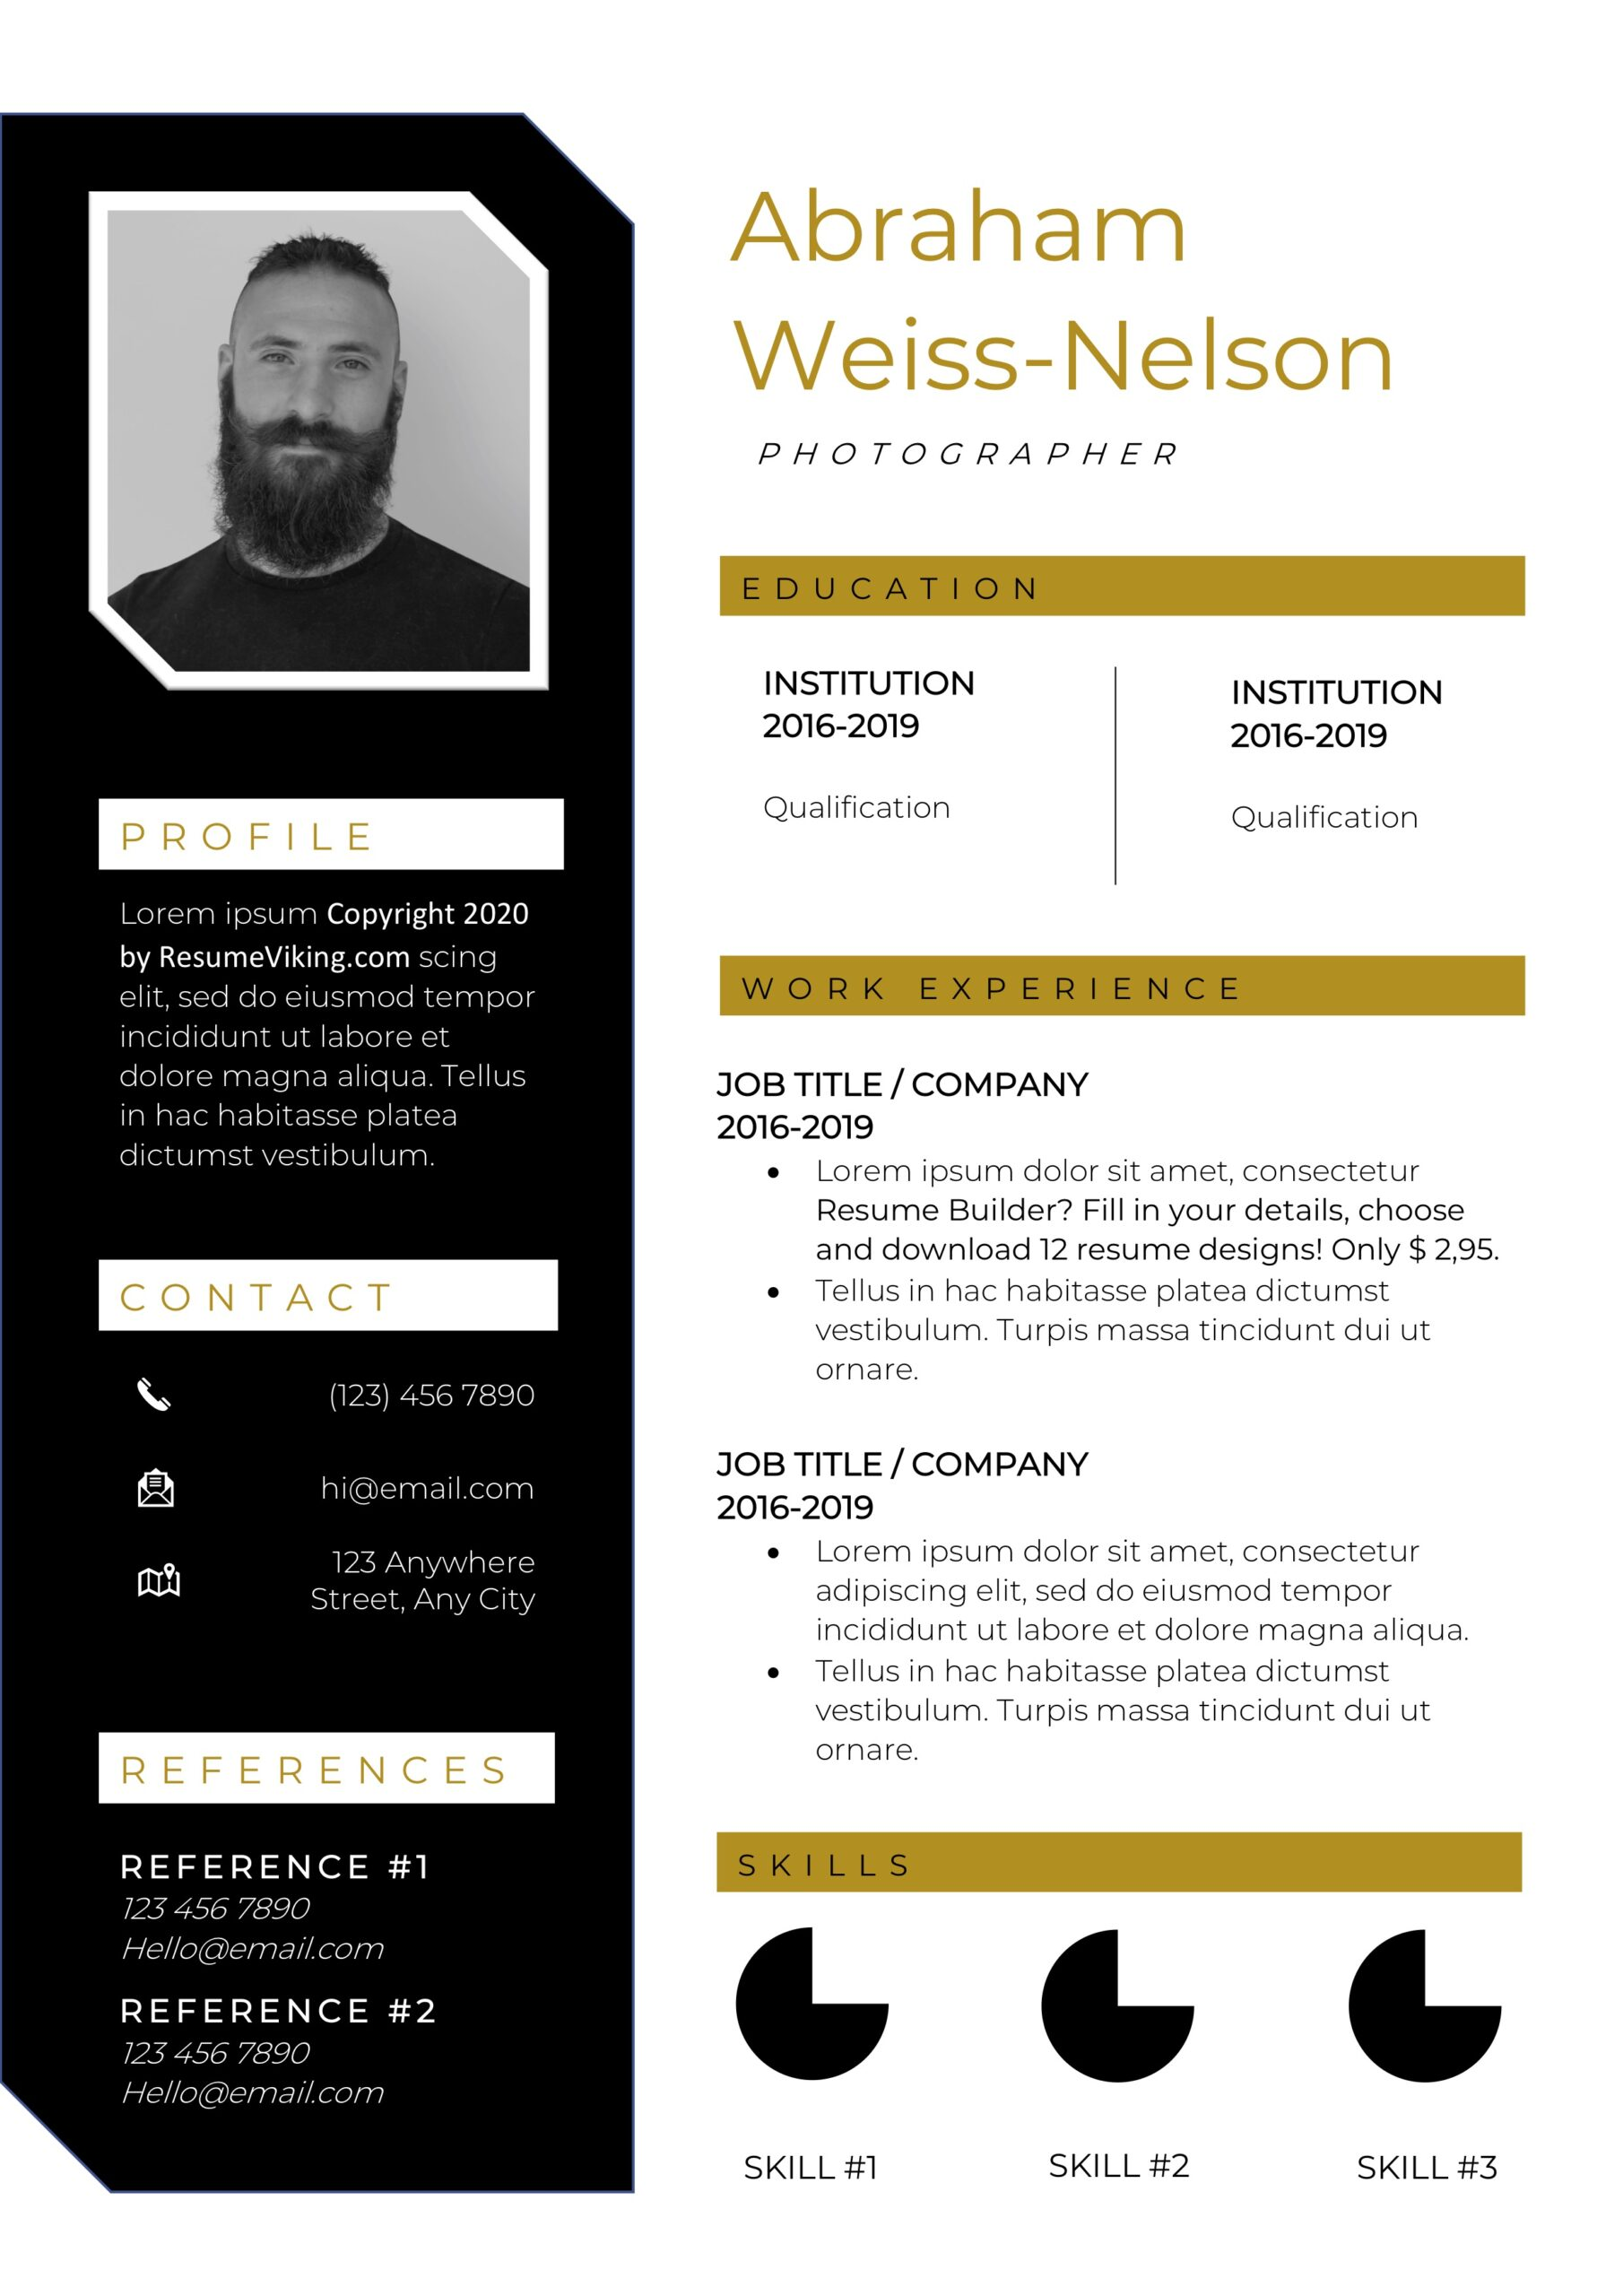 resume templates pdf word free downloads and guides latest format for freshers grace Resume Latest Resume Format 2020 For Freshers